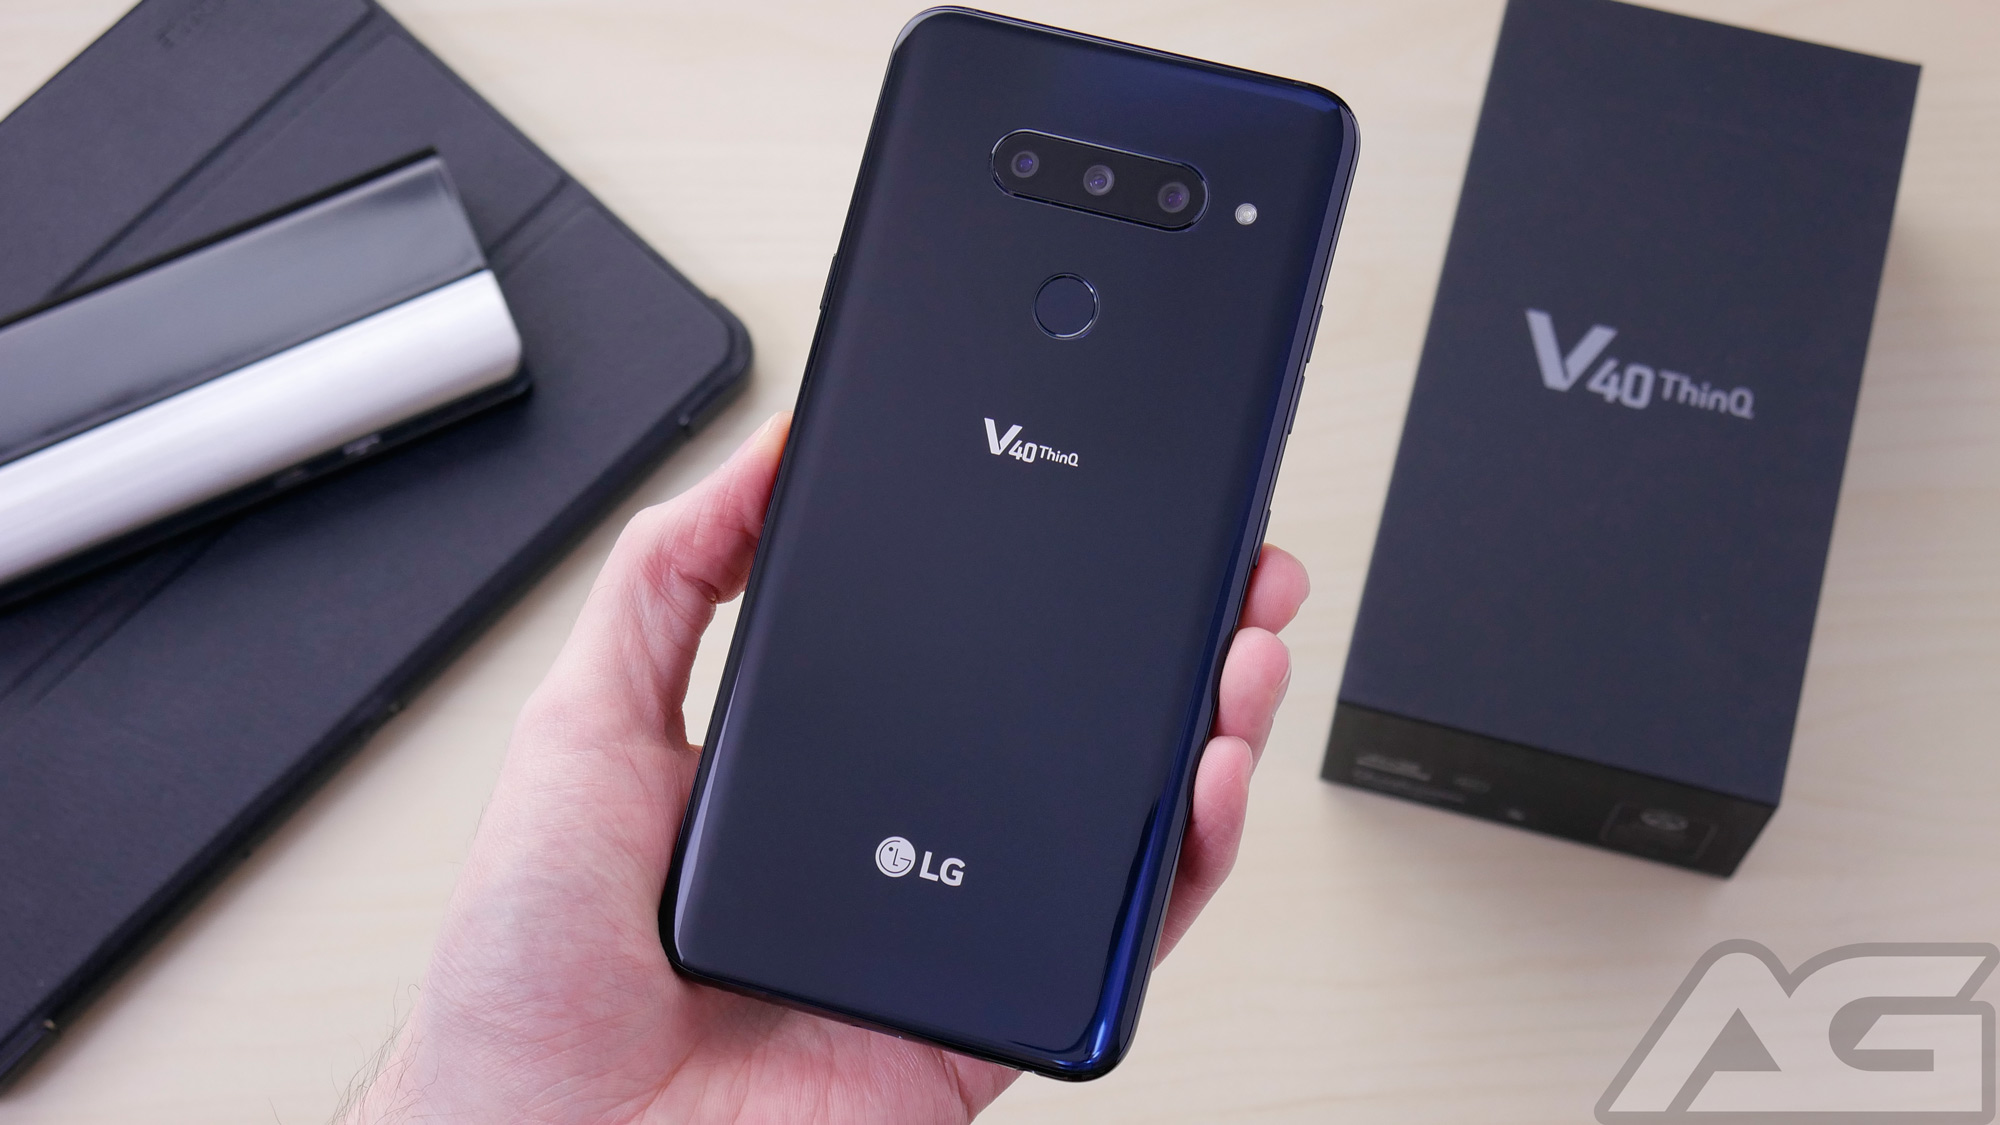 Here are the first 10 things you should do with the LG V40